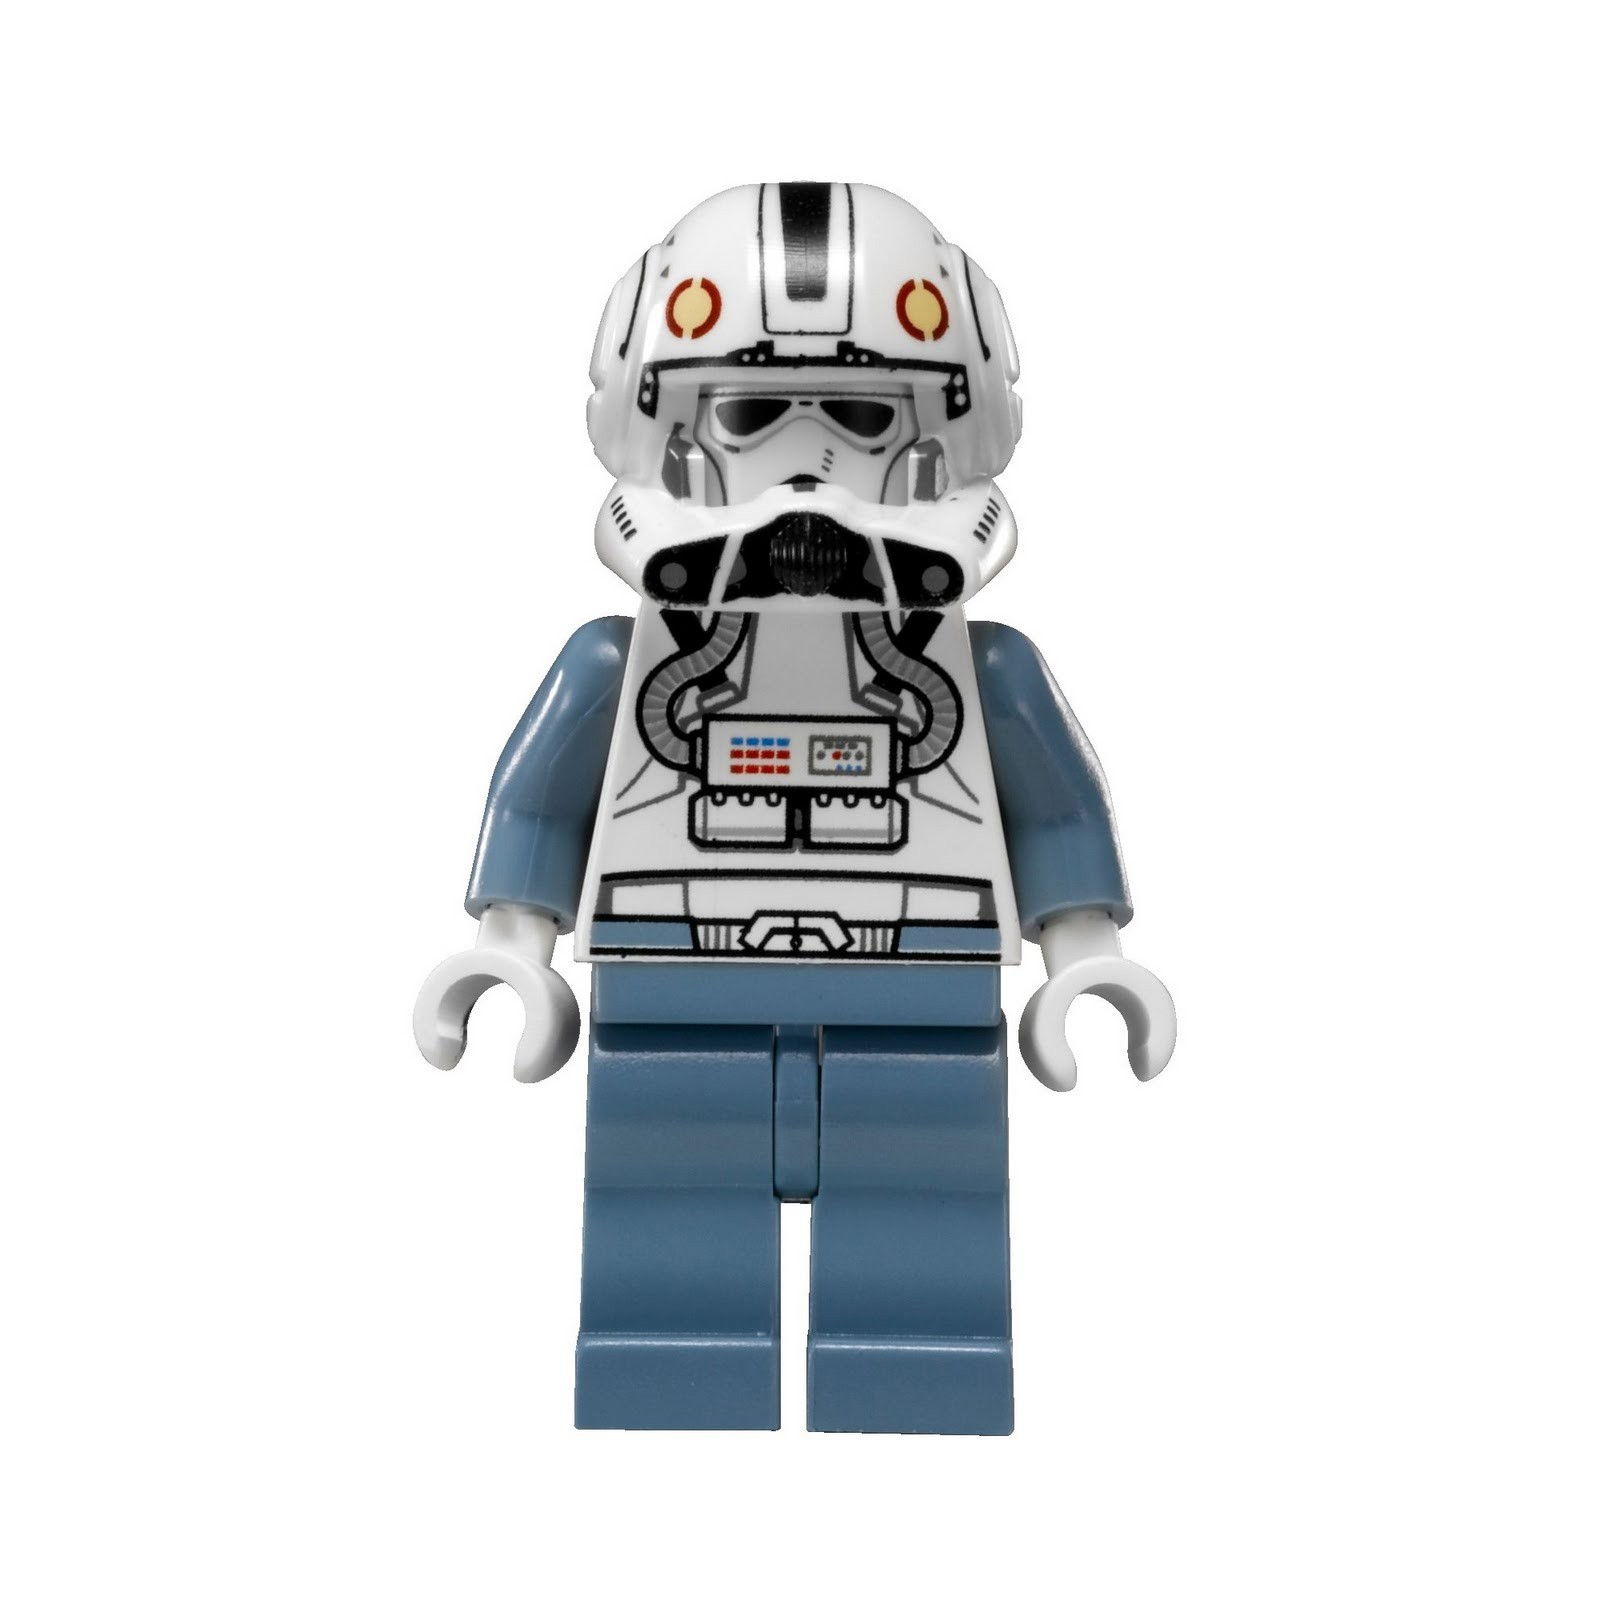 Lego March Calendar Más Recientes Clone Pilot Brickipedia Of Lego March Calendar Más Actual 9 Best Up Ing Kids Programs Images On Pinterest